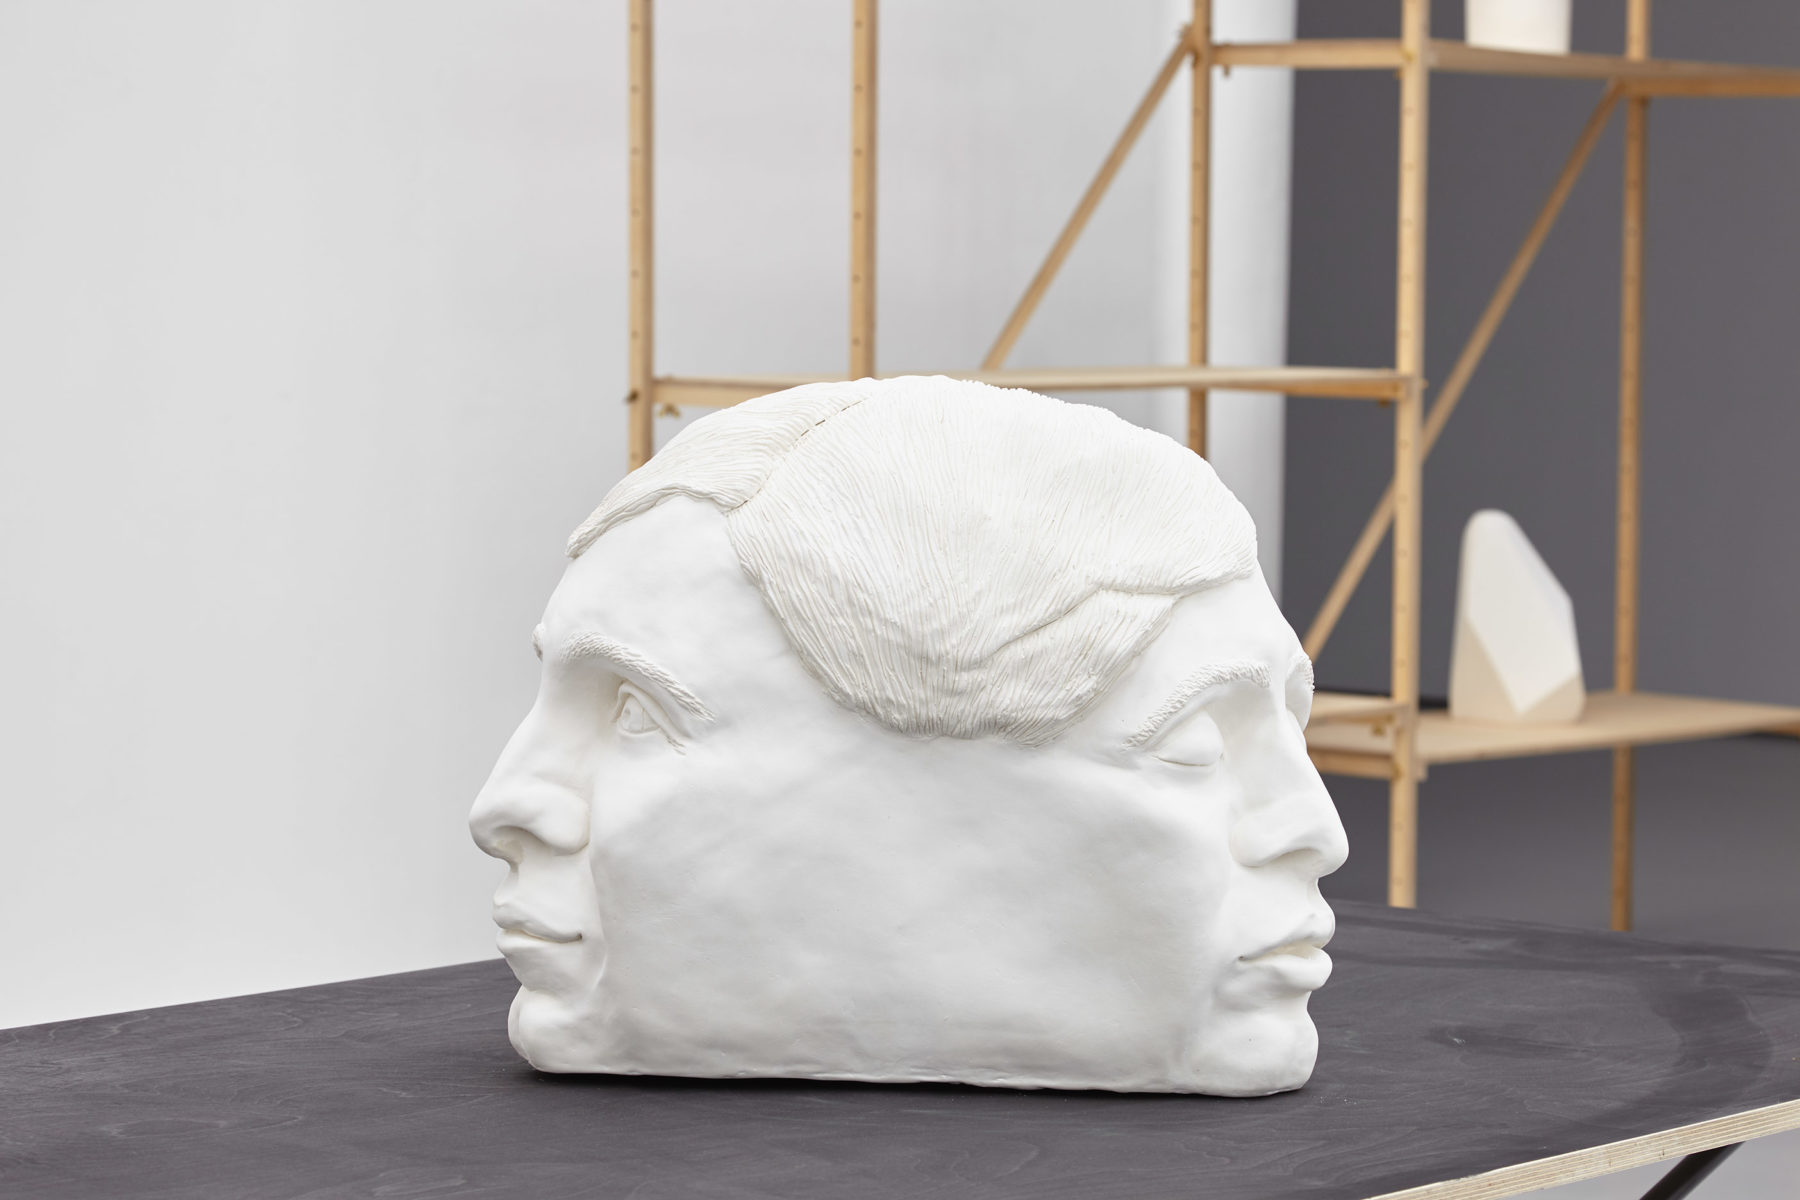 A large white sculpture of two heads joined together at the back is placed on a table in the gallery.